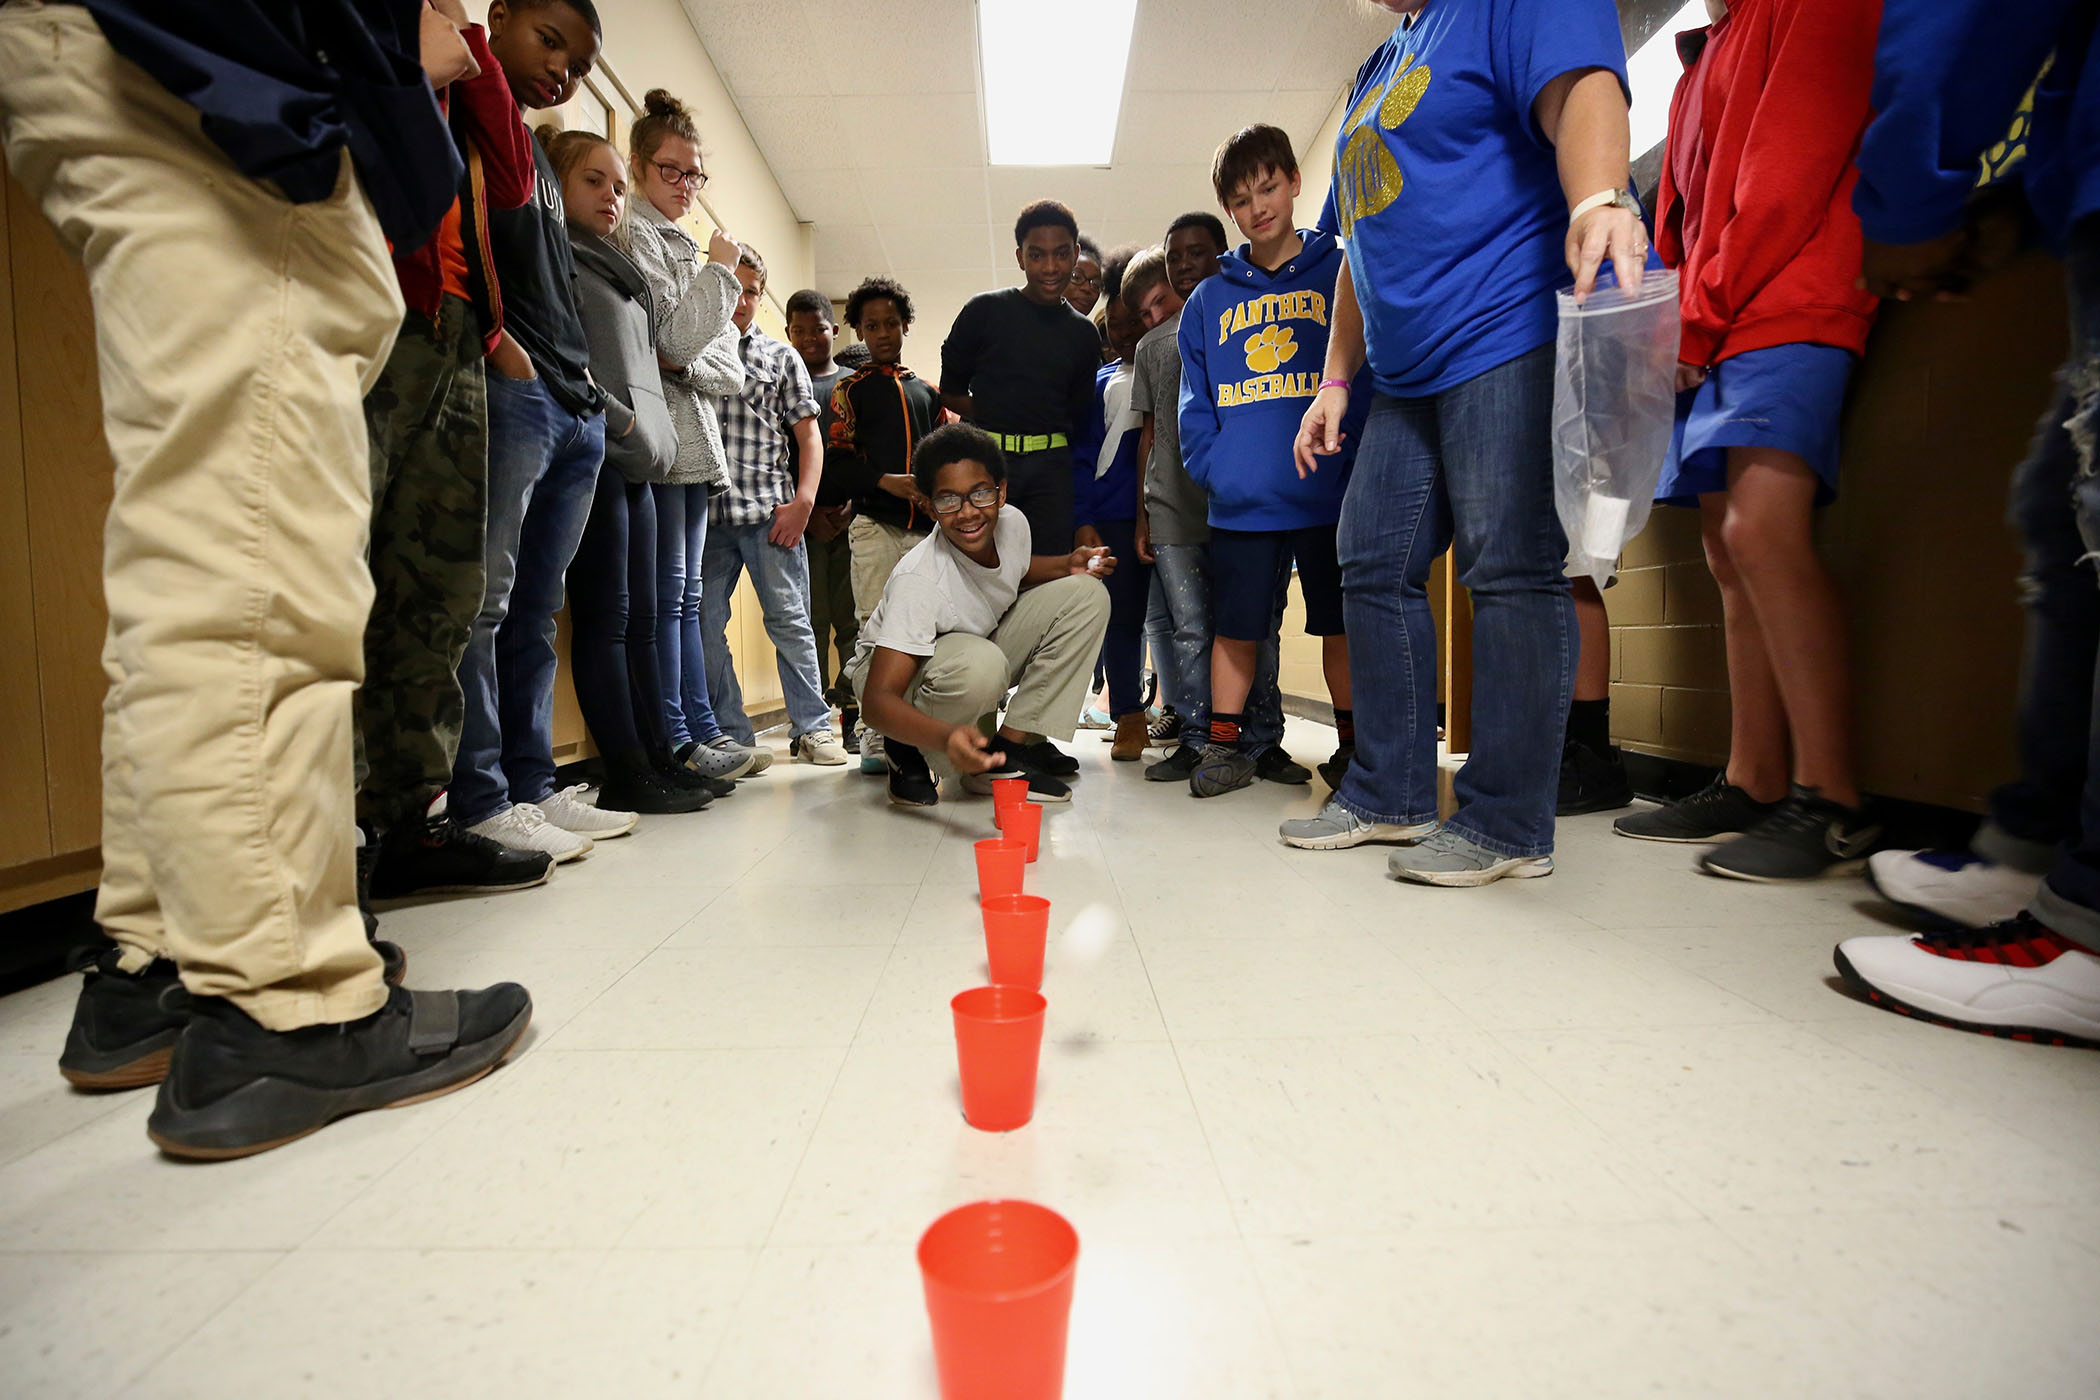 QJH student plays a game to illustrate Begin with the end in mind.